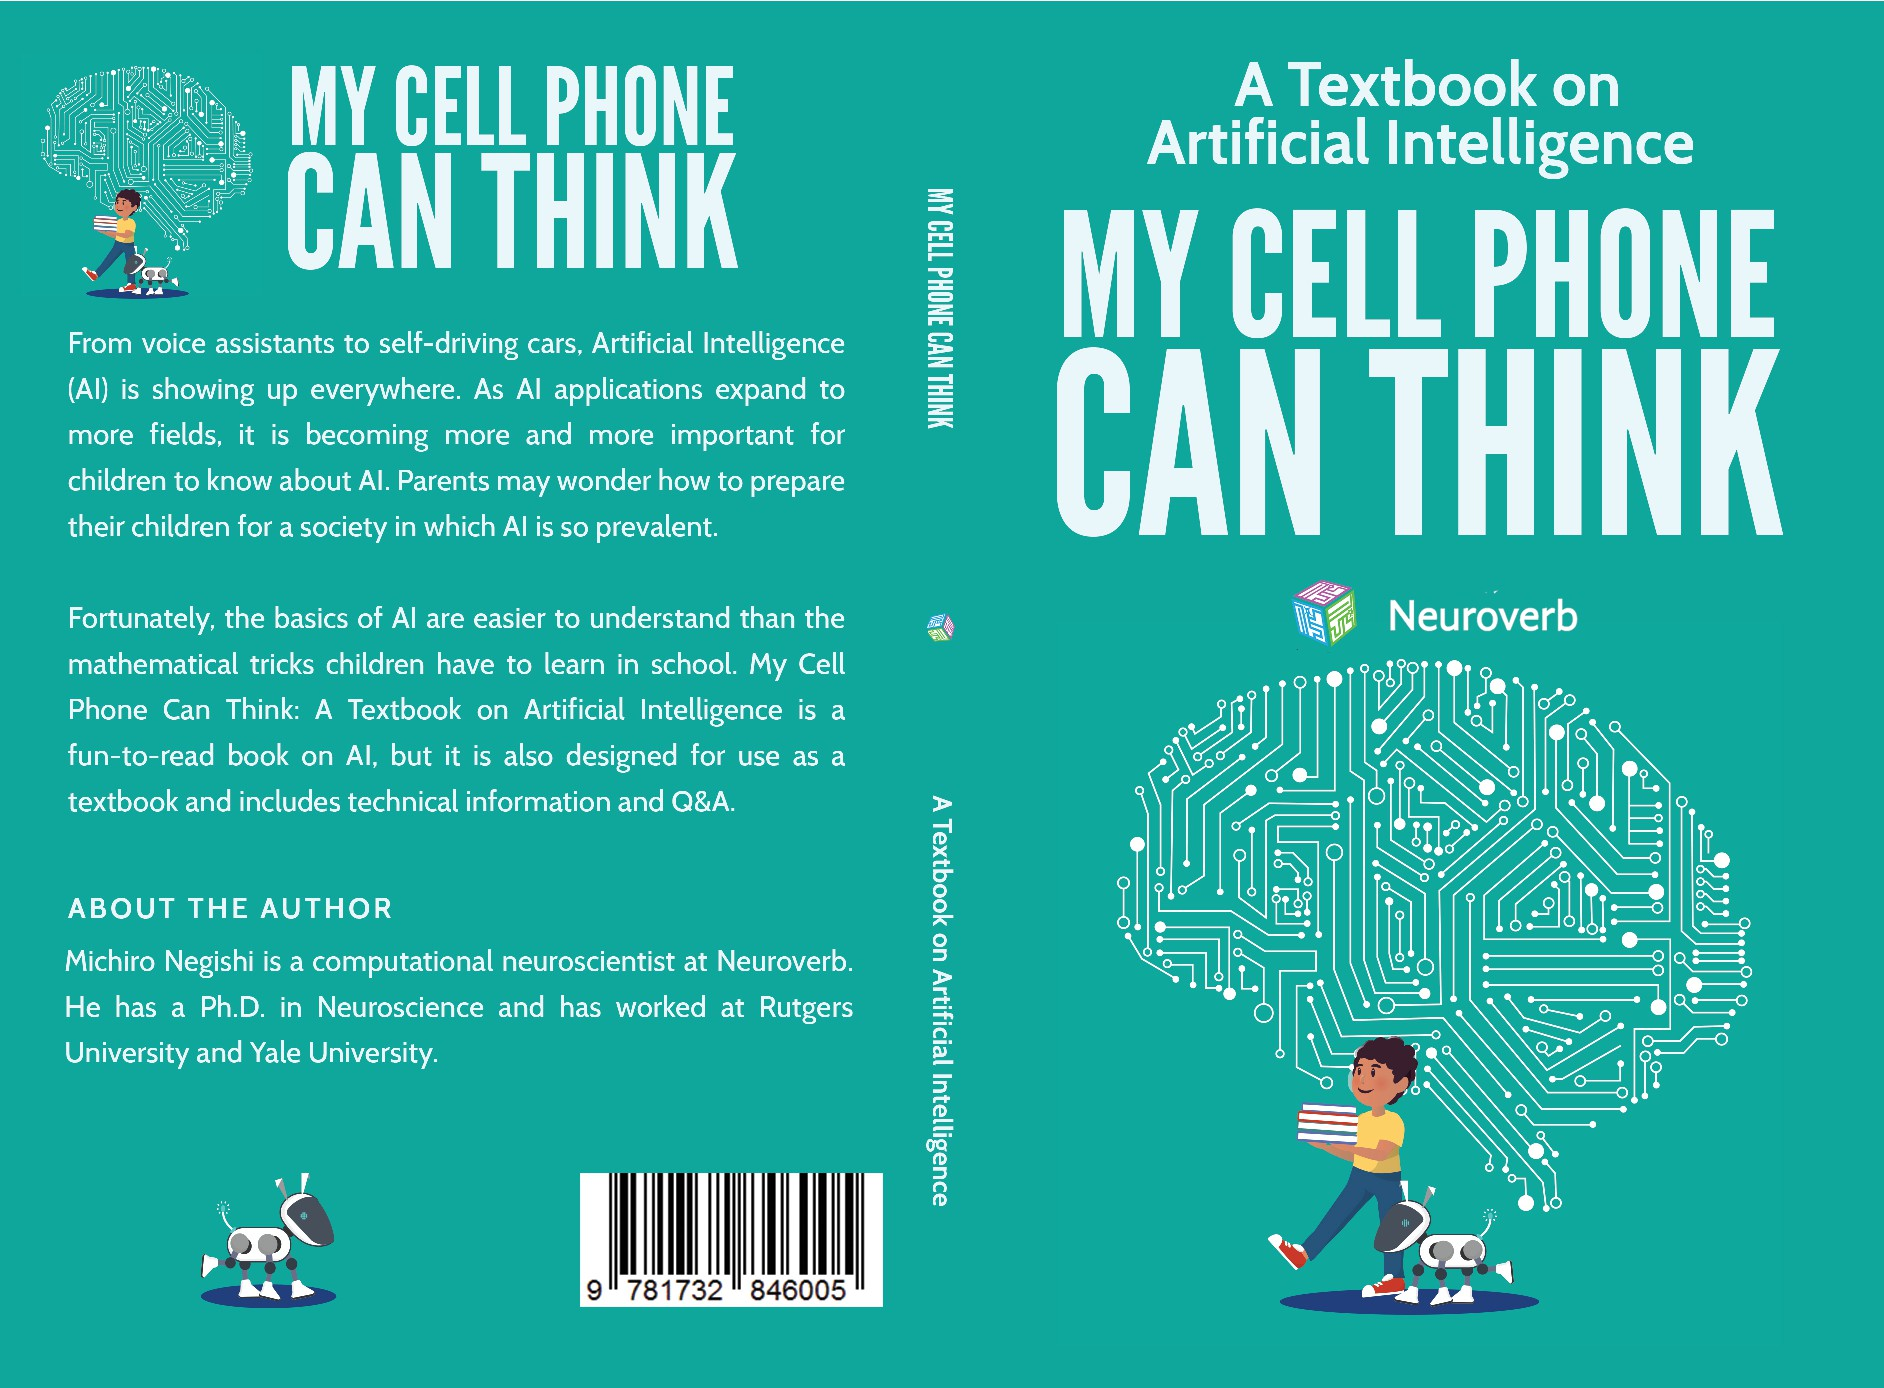 My cell phone can think: a textbook on Artificial Intelligence.